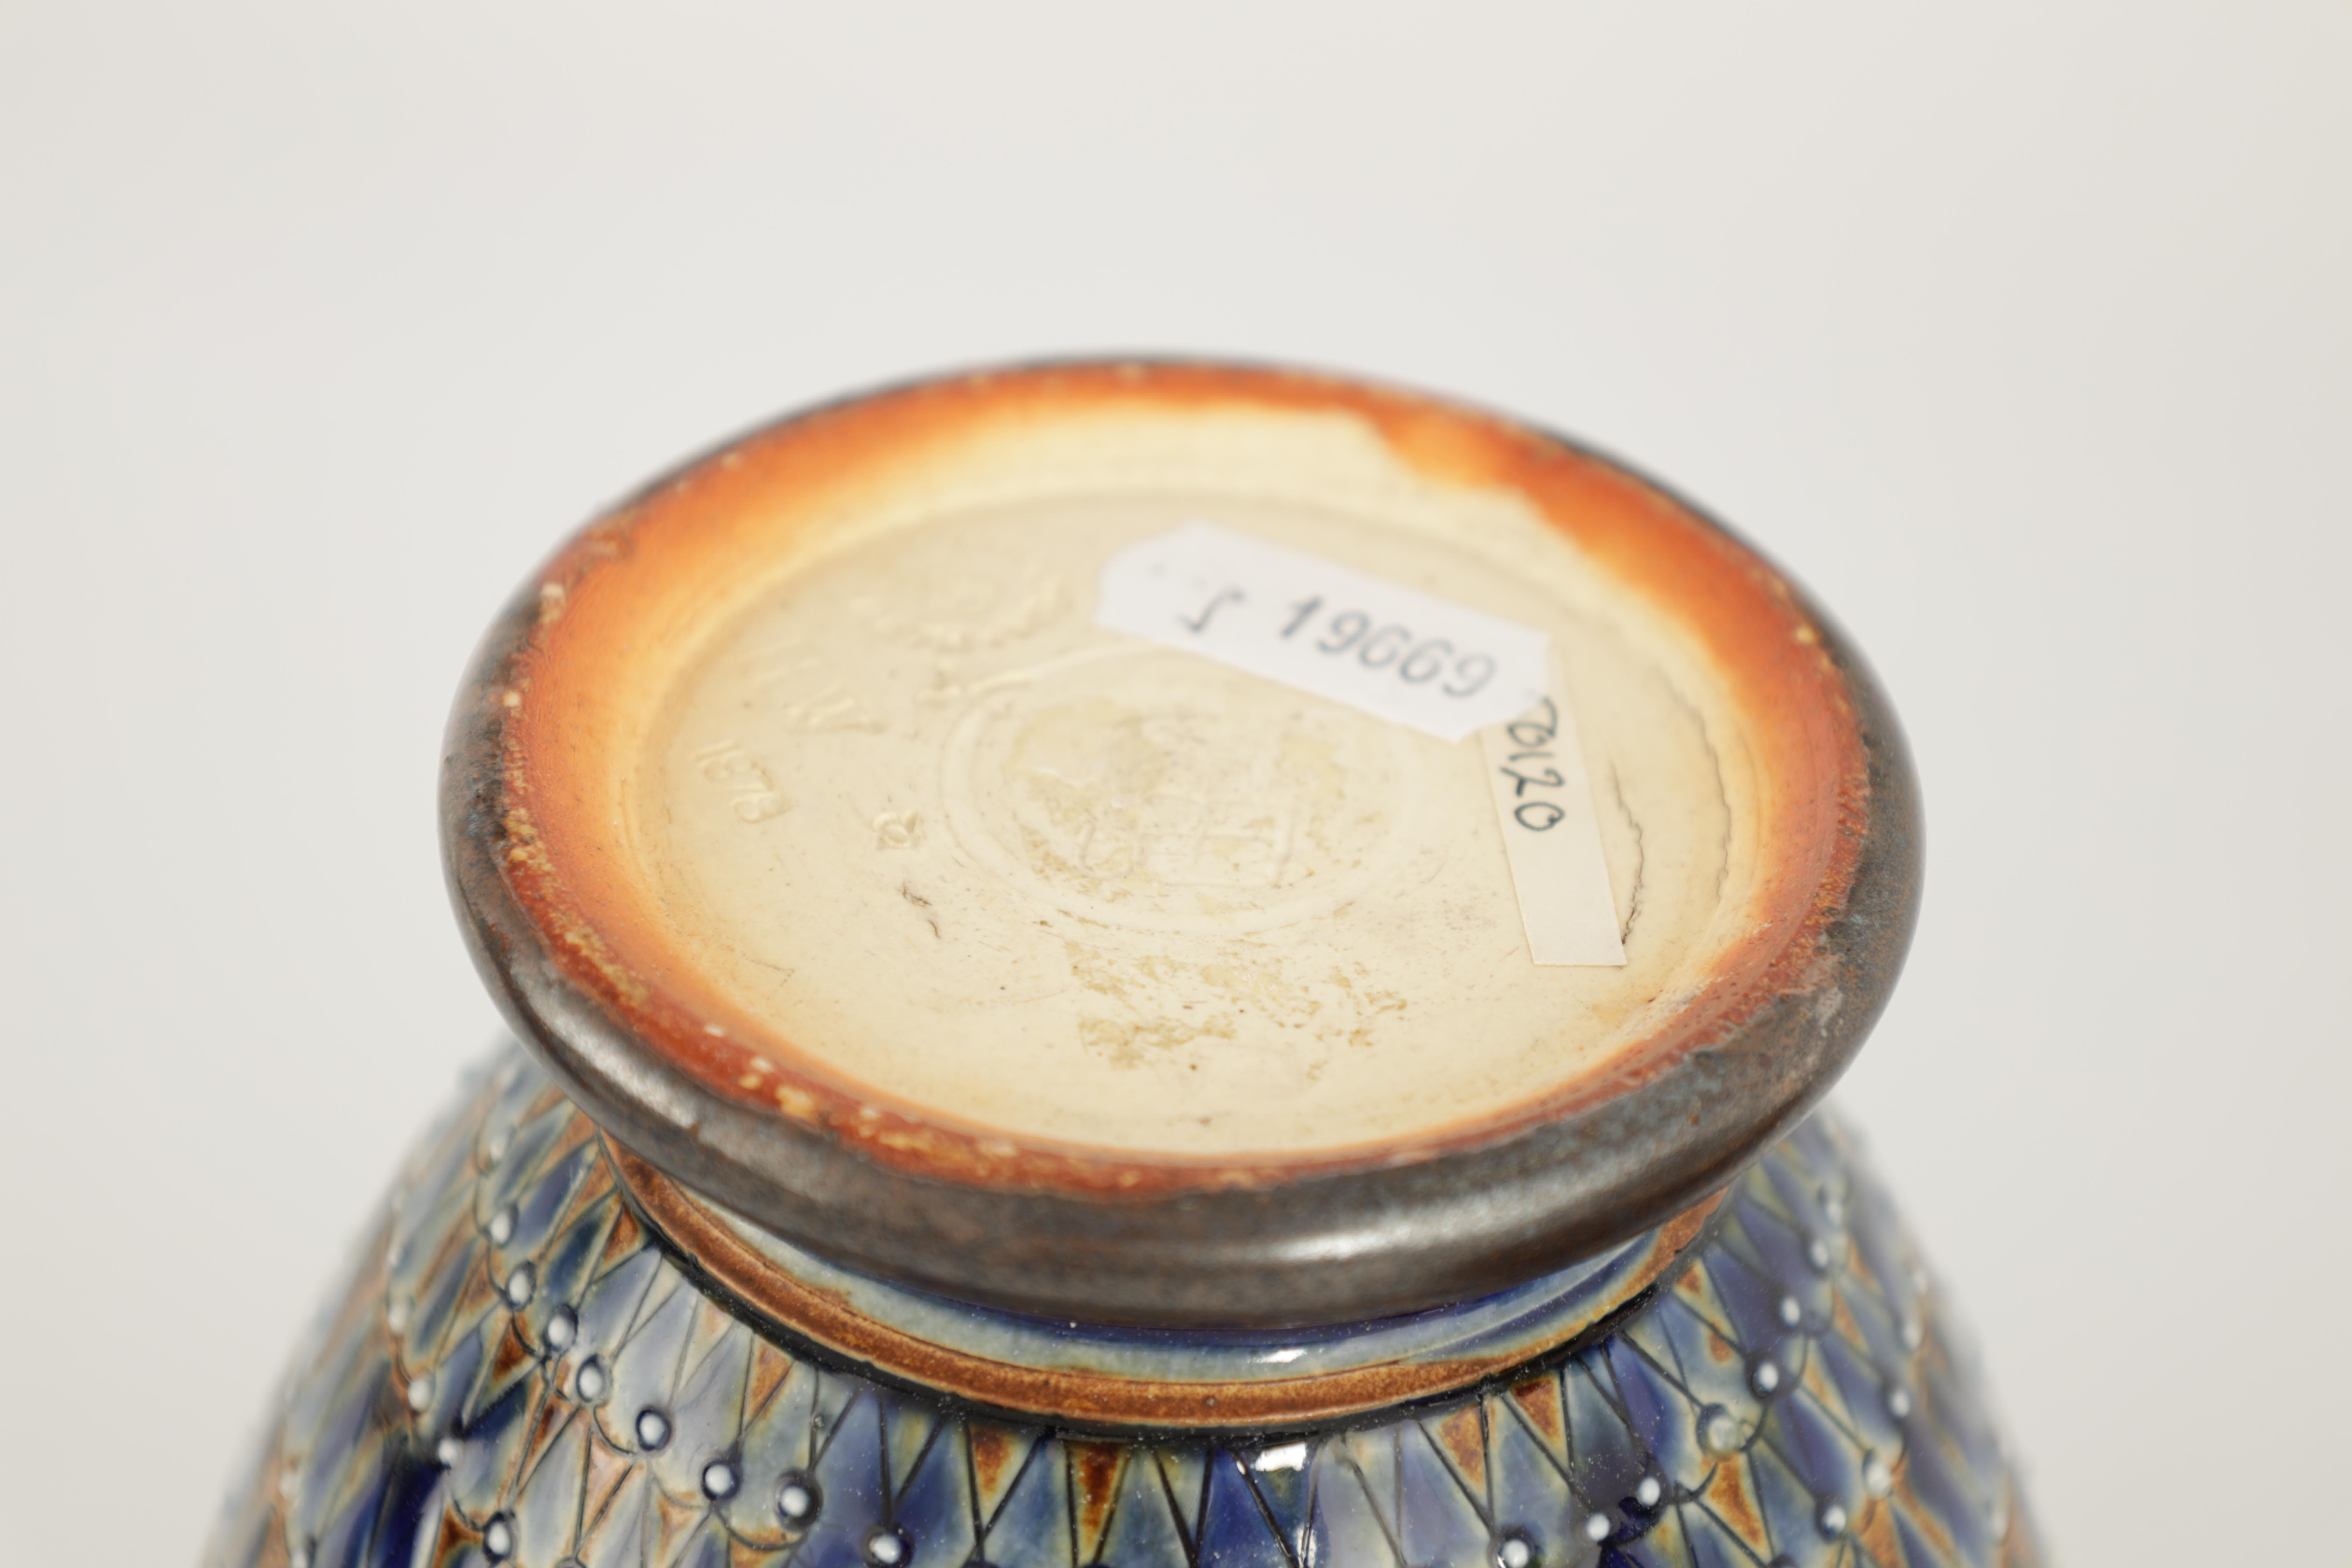 AN UNUSUAL ROYAL DOULTON TAPERED VASE WITH ROUNDED UPPER BODY decorated with designs of fruit and - Image 7 of 7